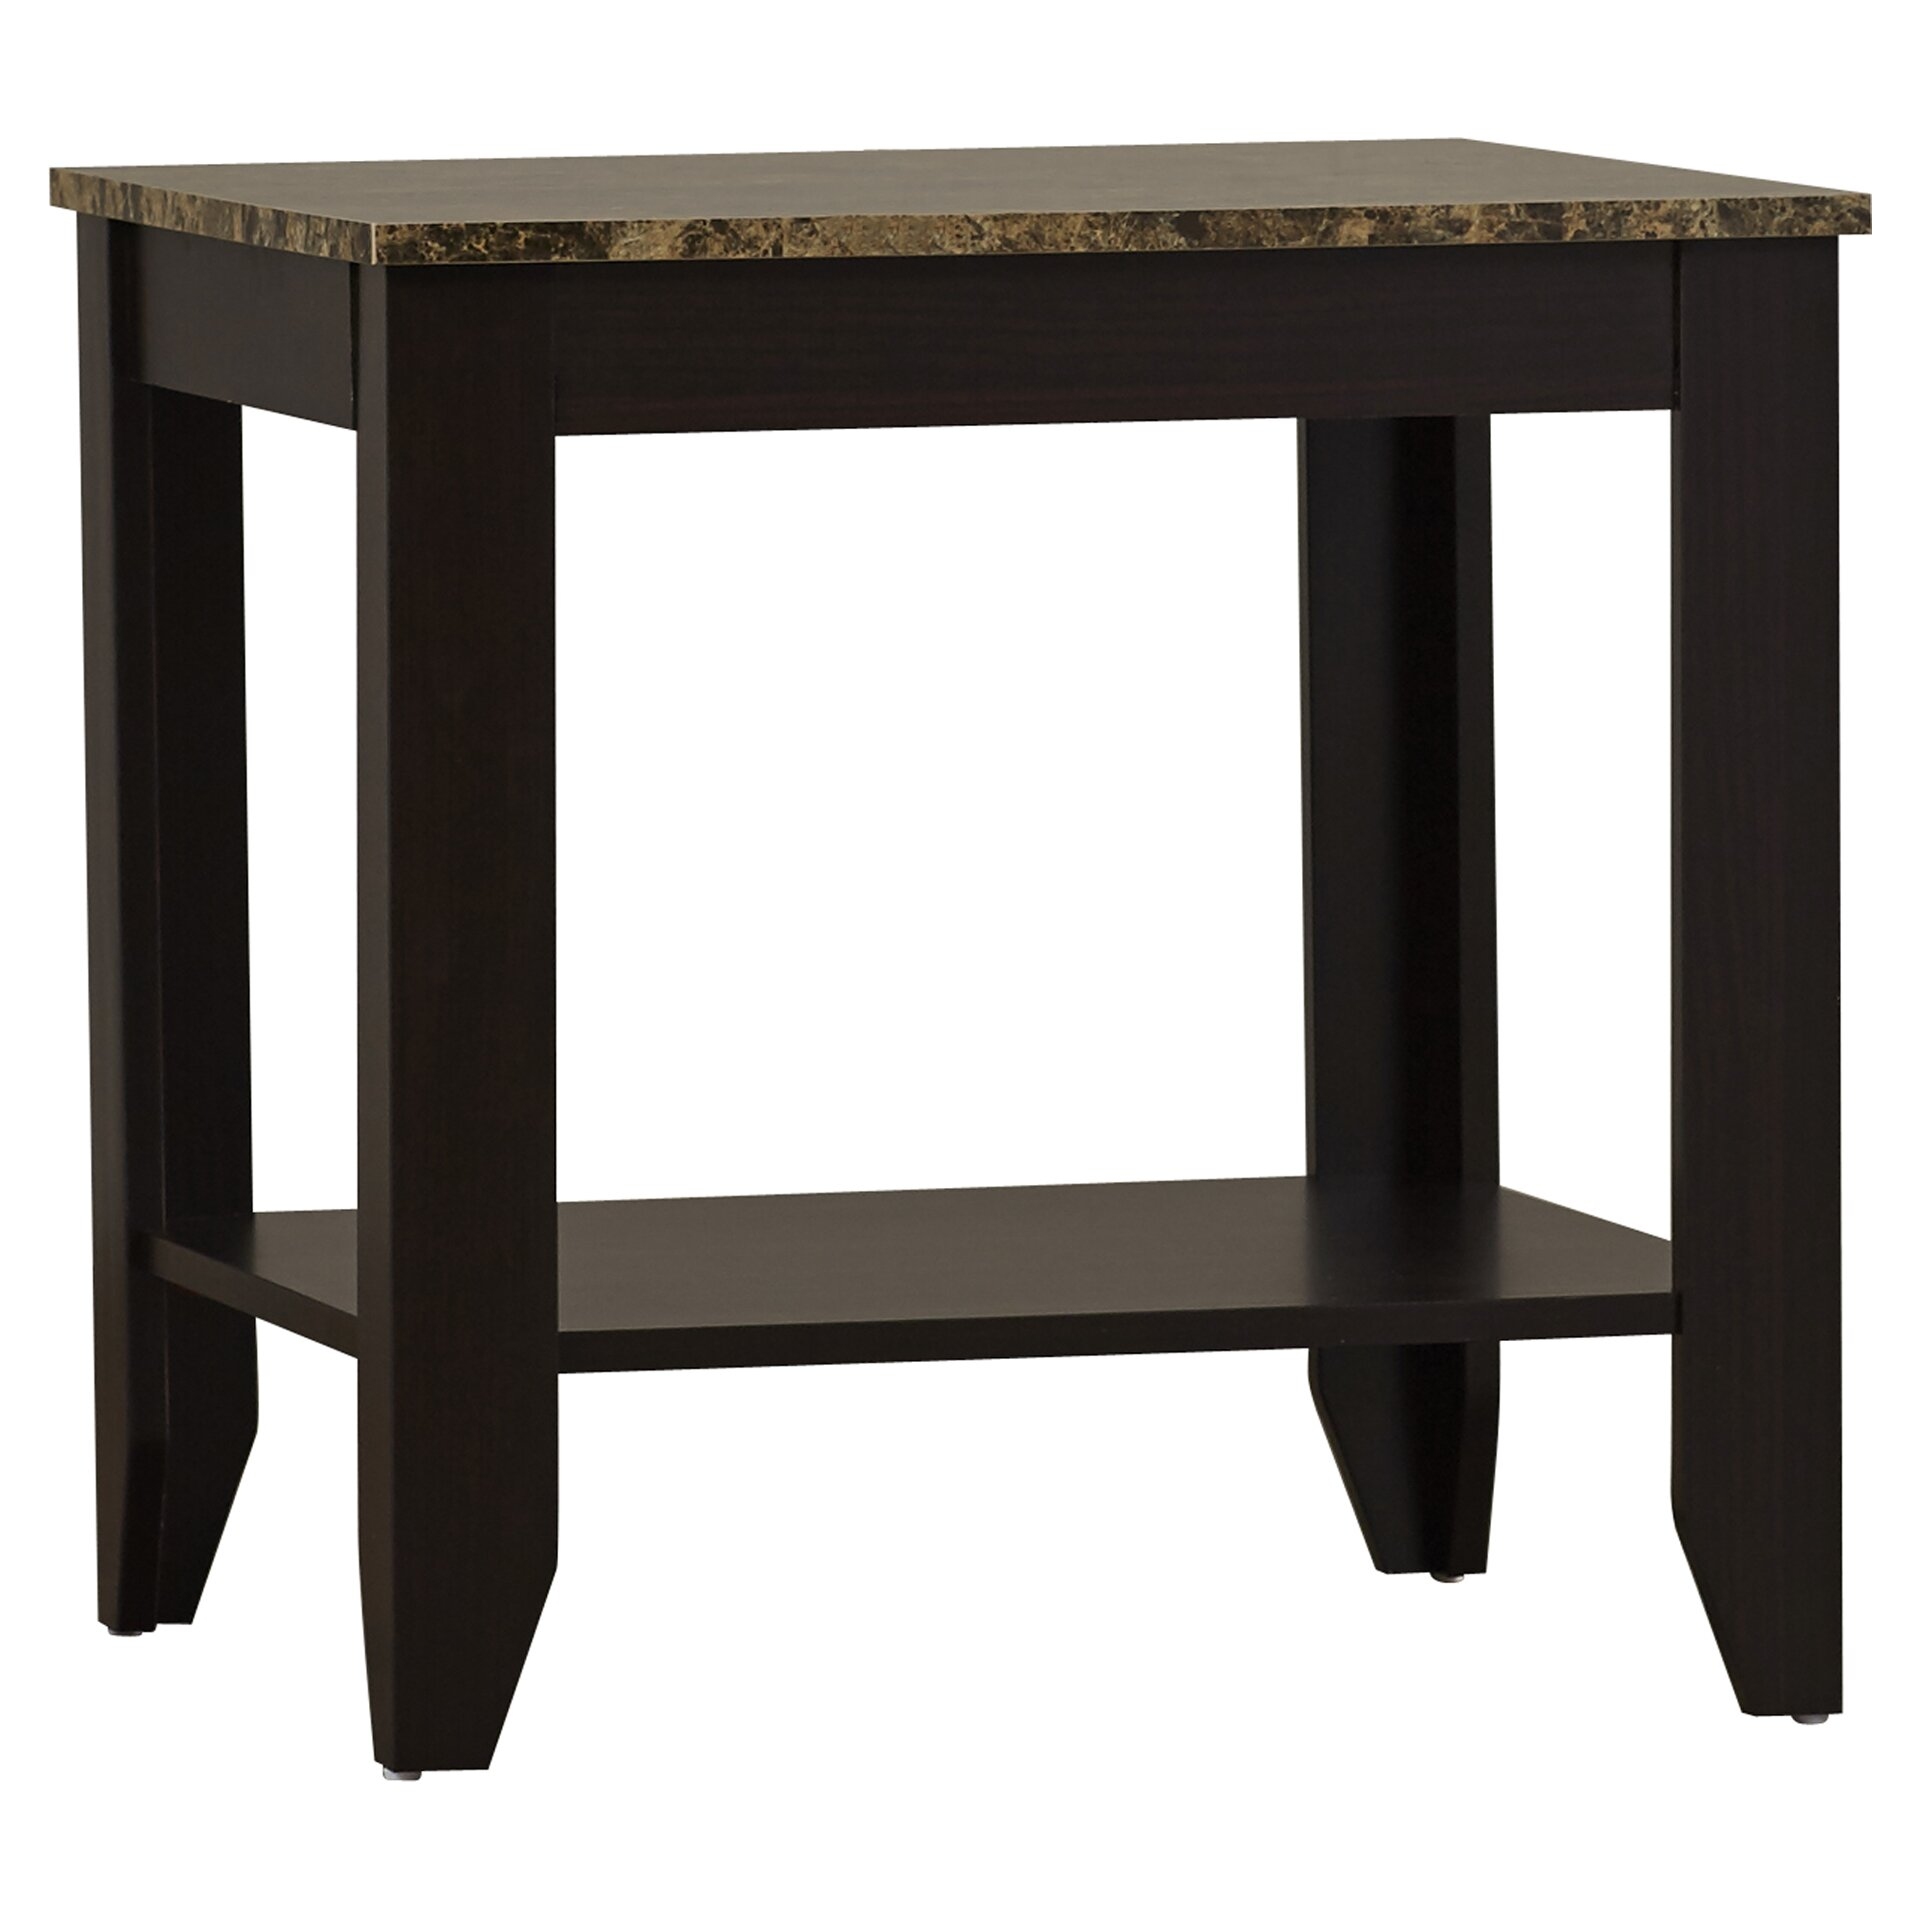 Andover mills josefa 3 piece coffee table set reviews for Coffee tables 3 piece